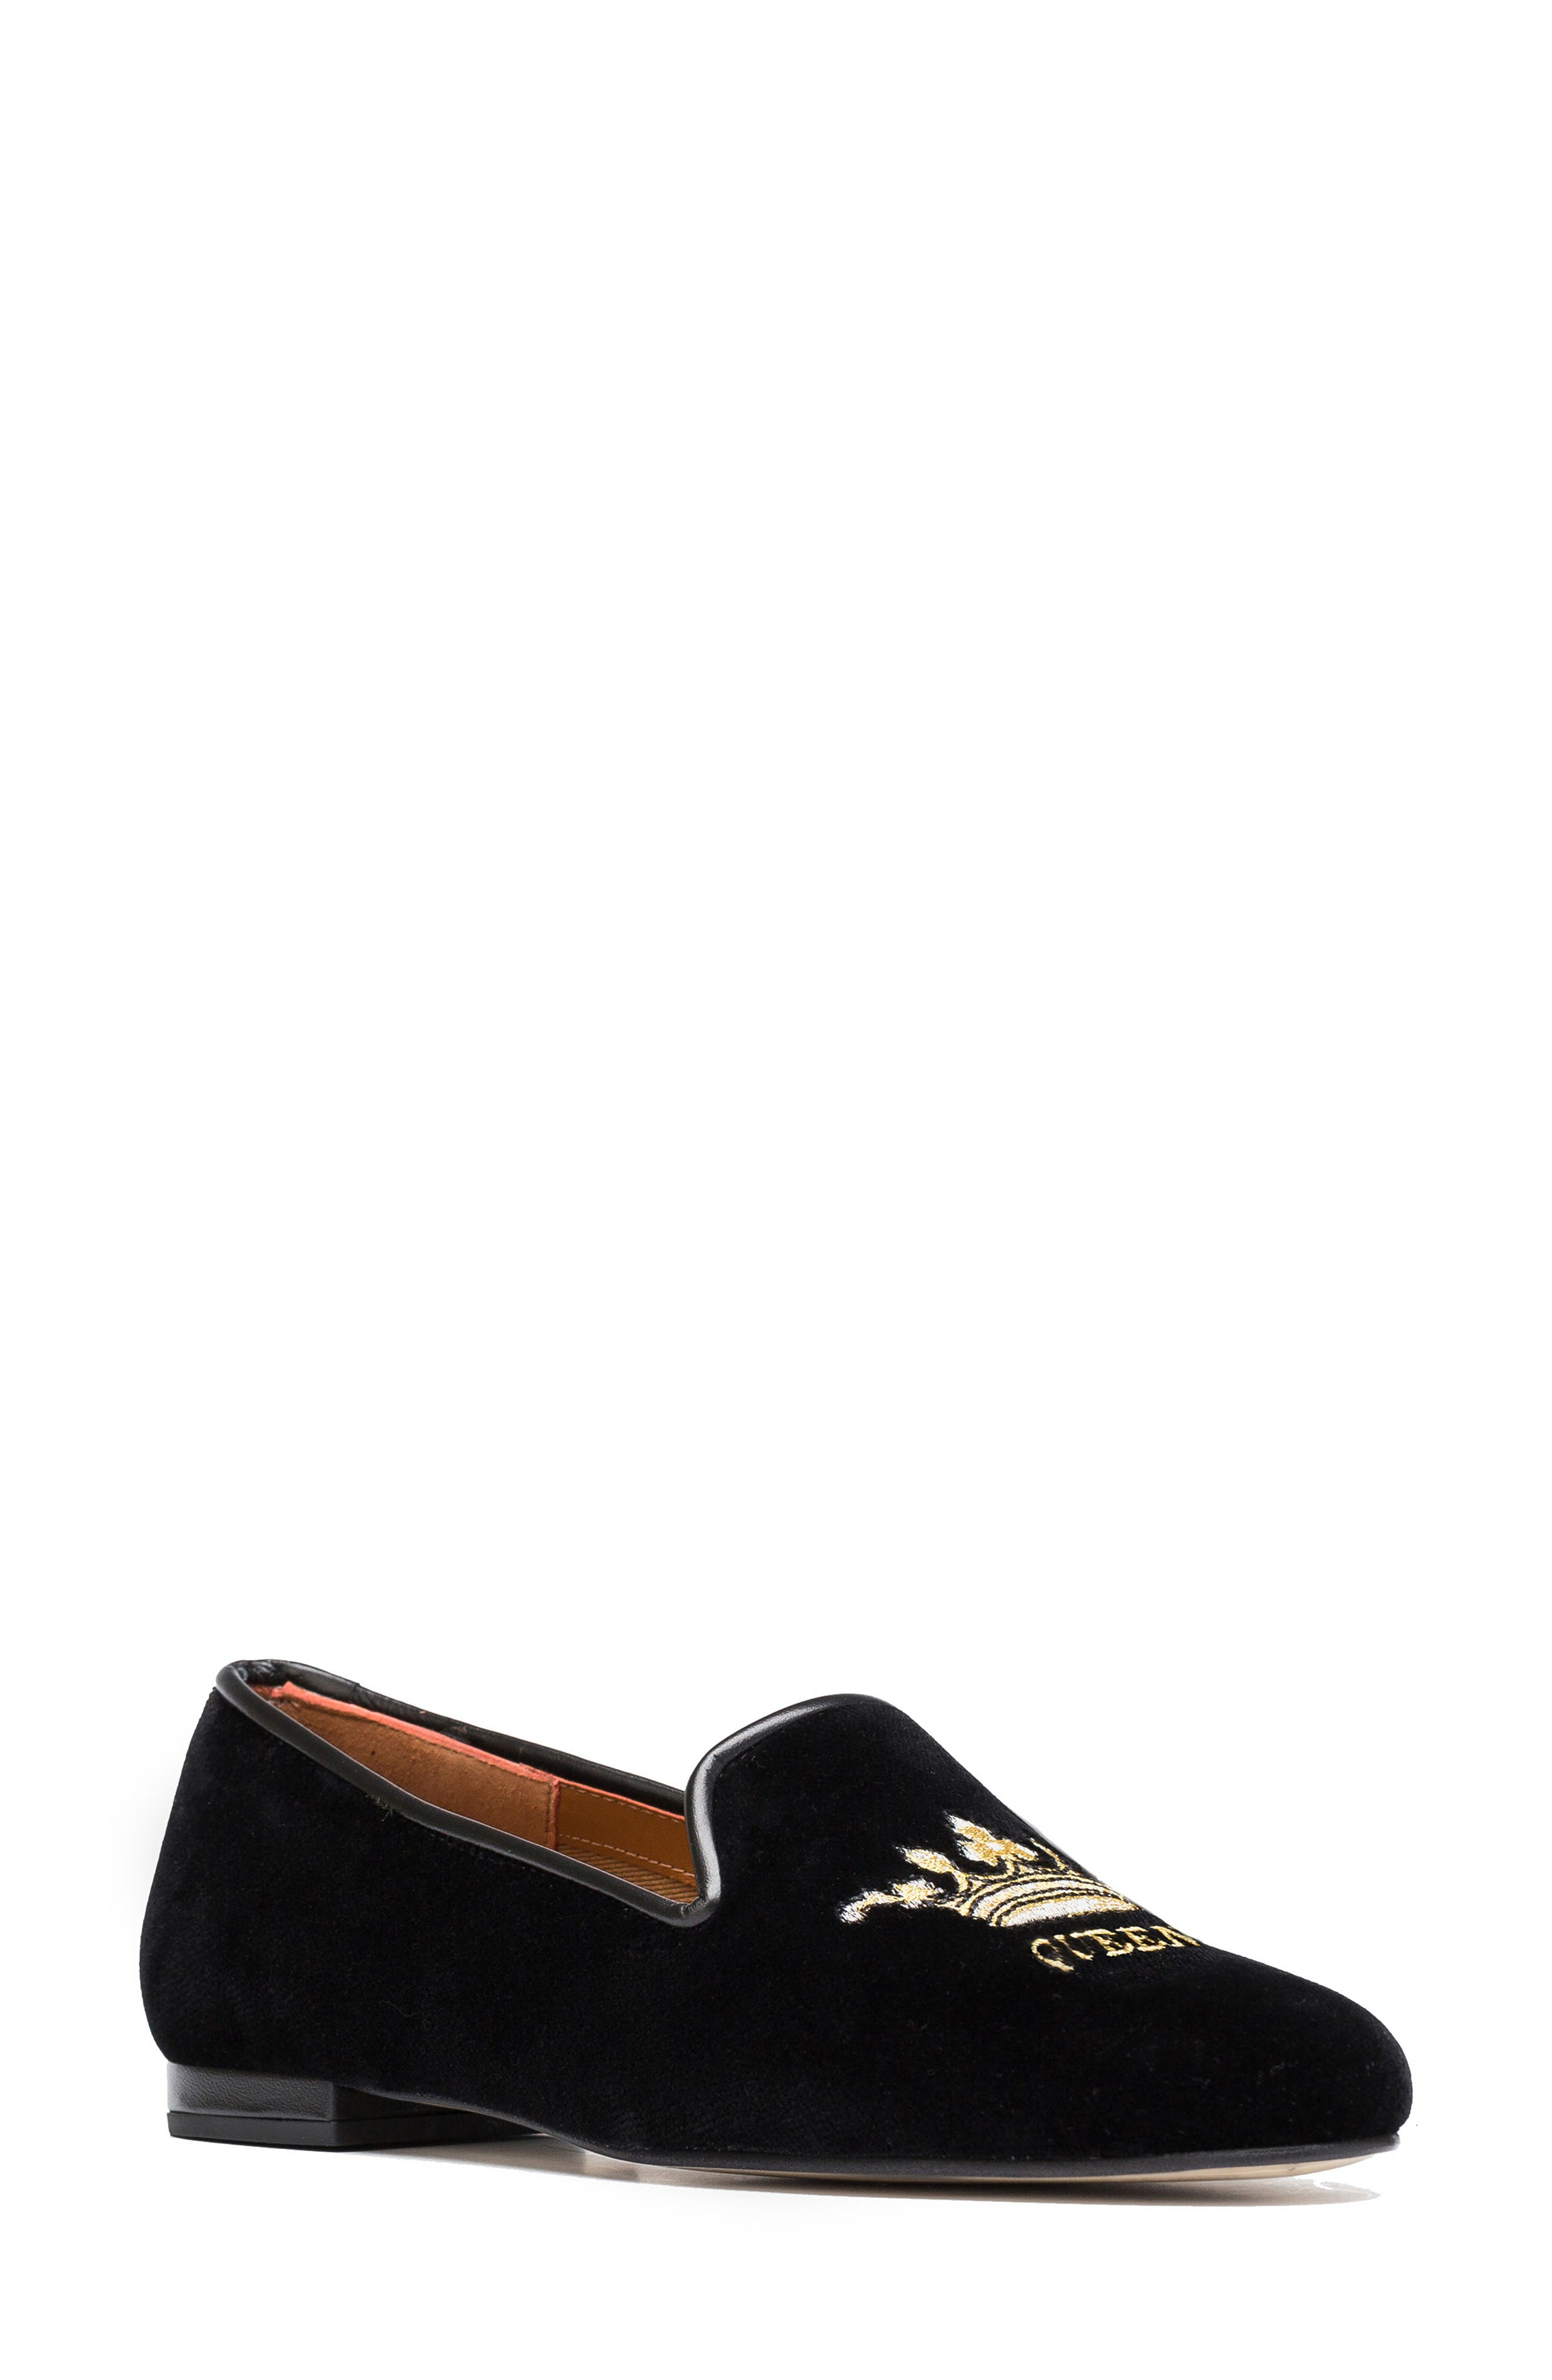 Gatsby Queen Bee Loafer